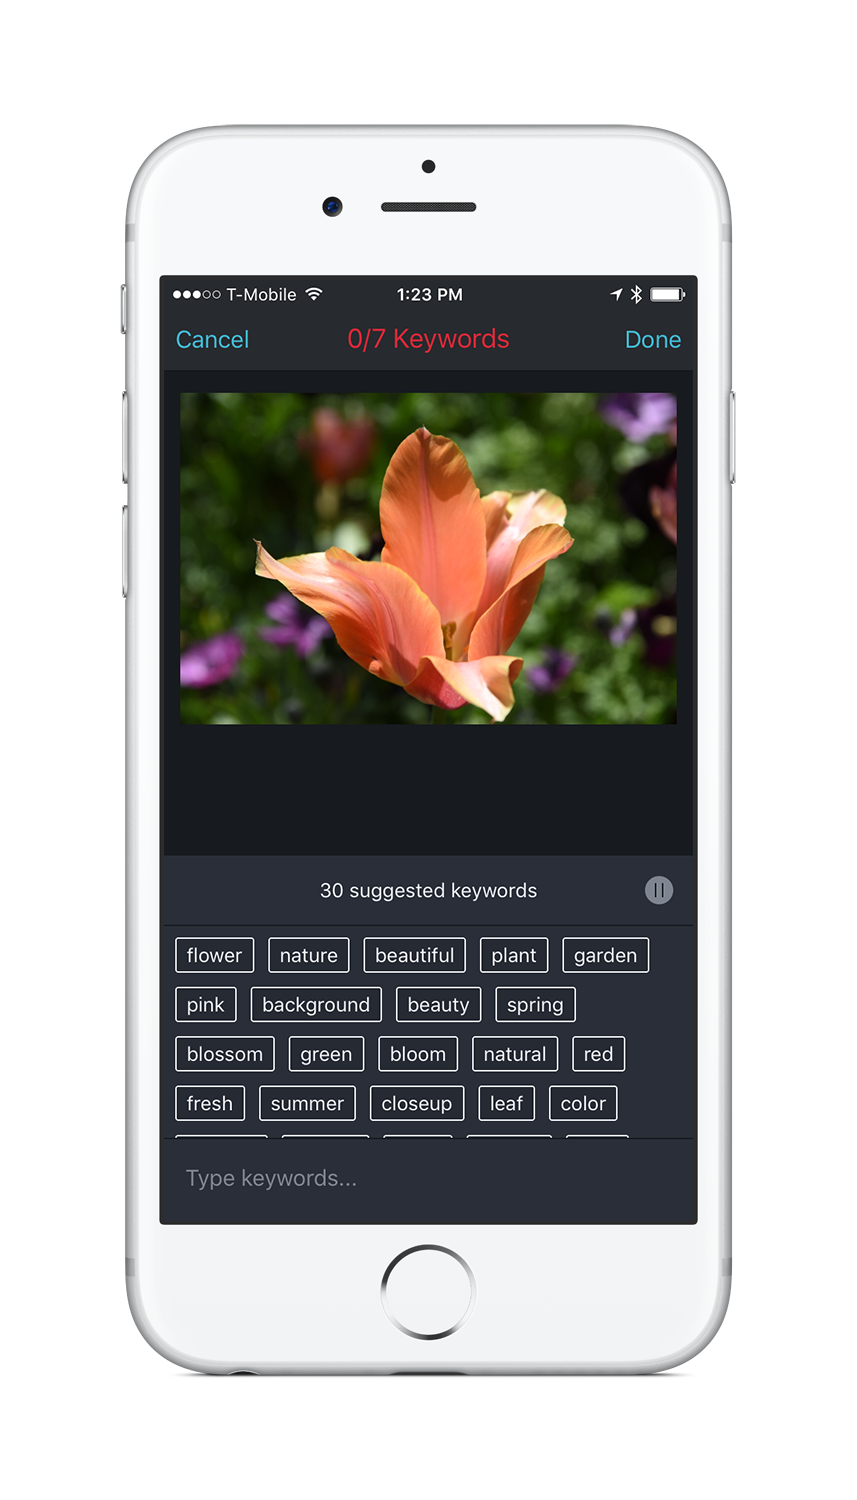 Shutterstock releases a keyword suggestion tool for iPhone